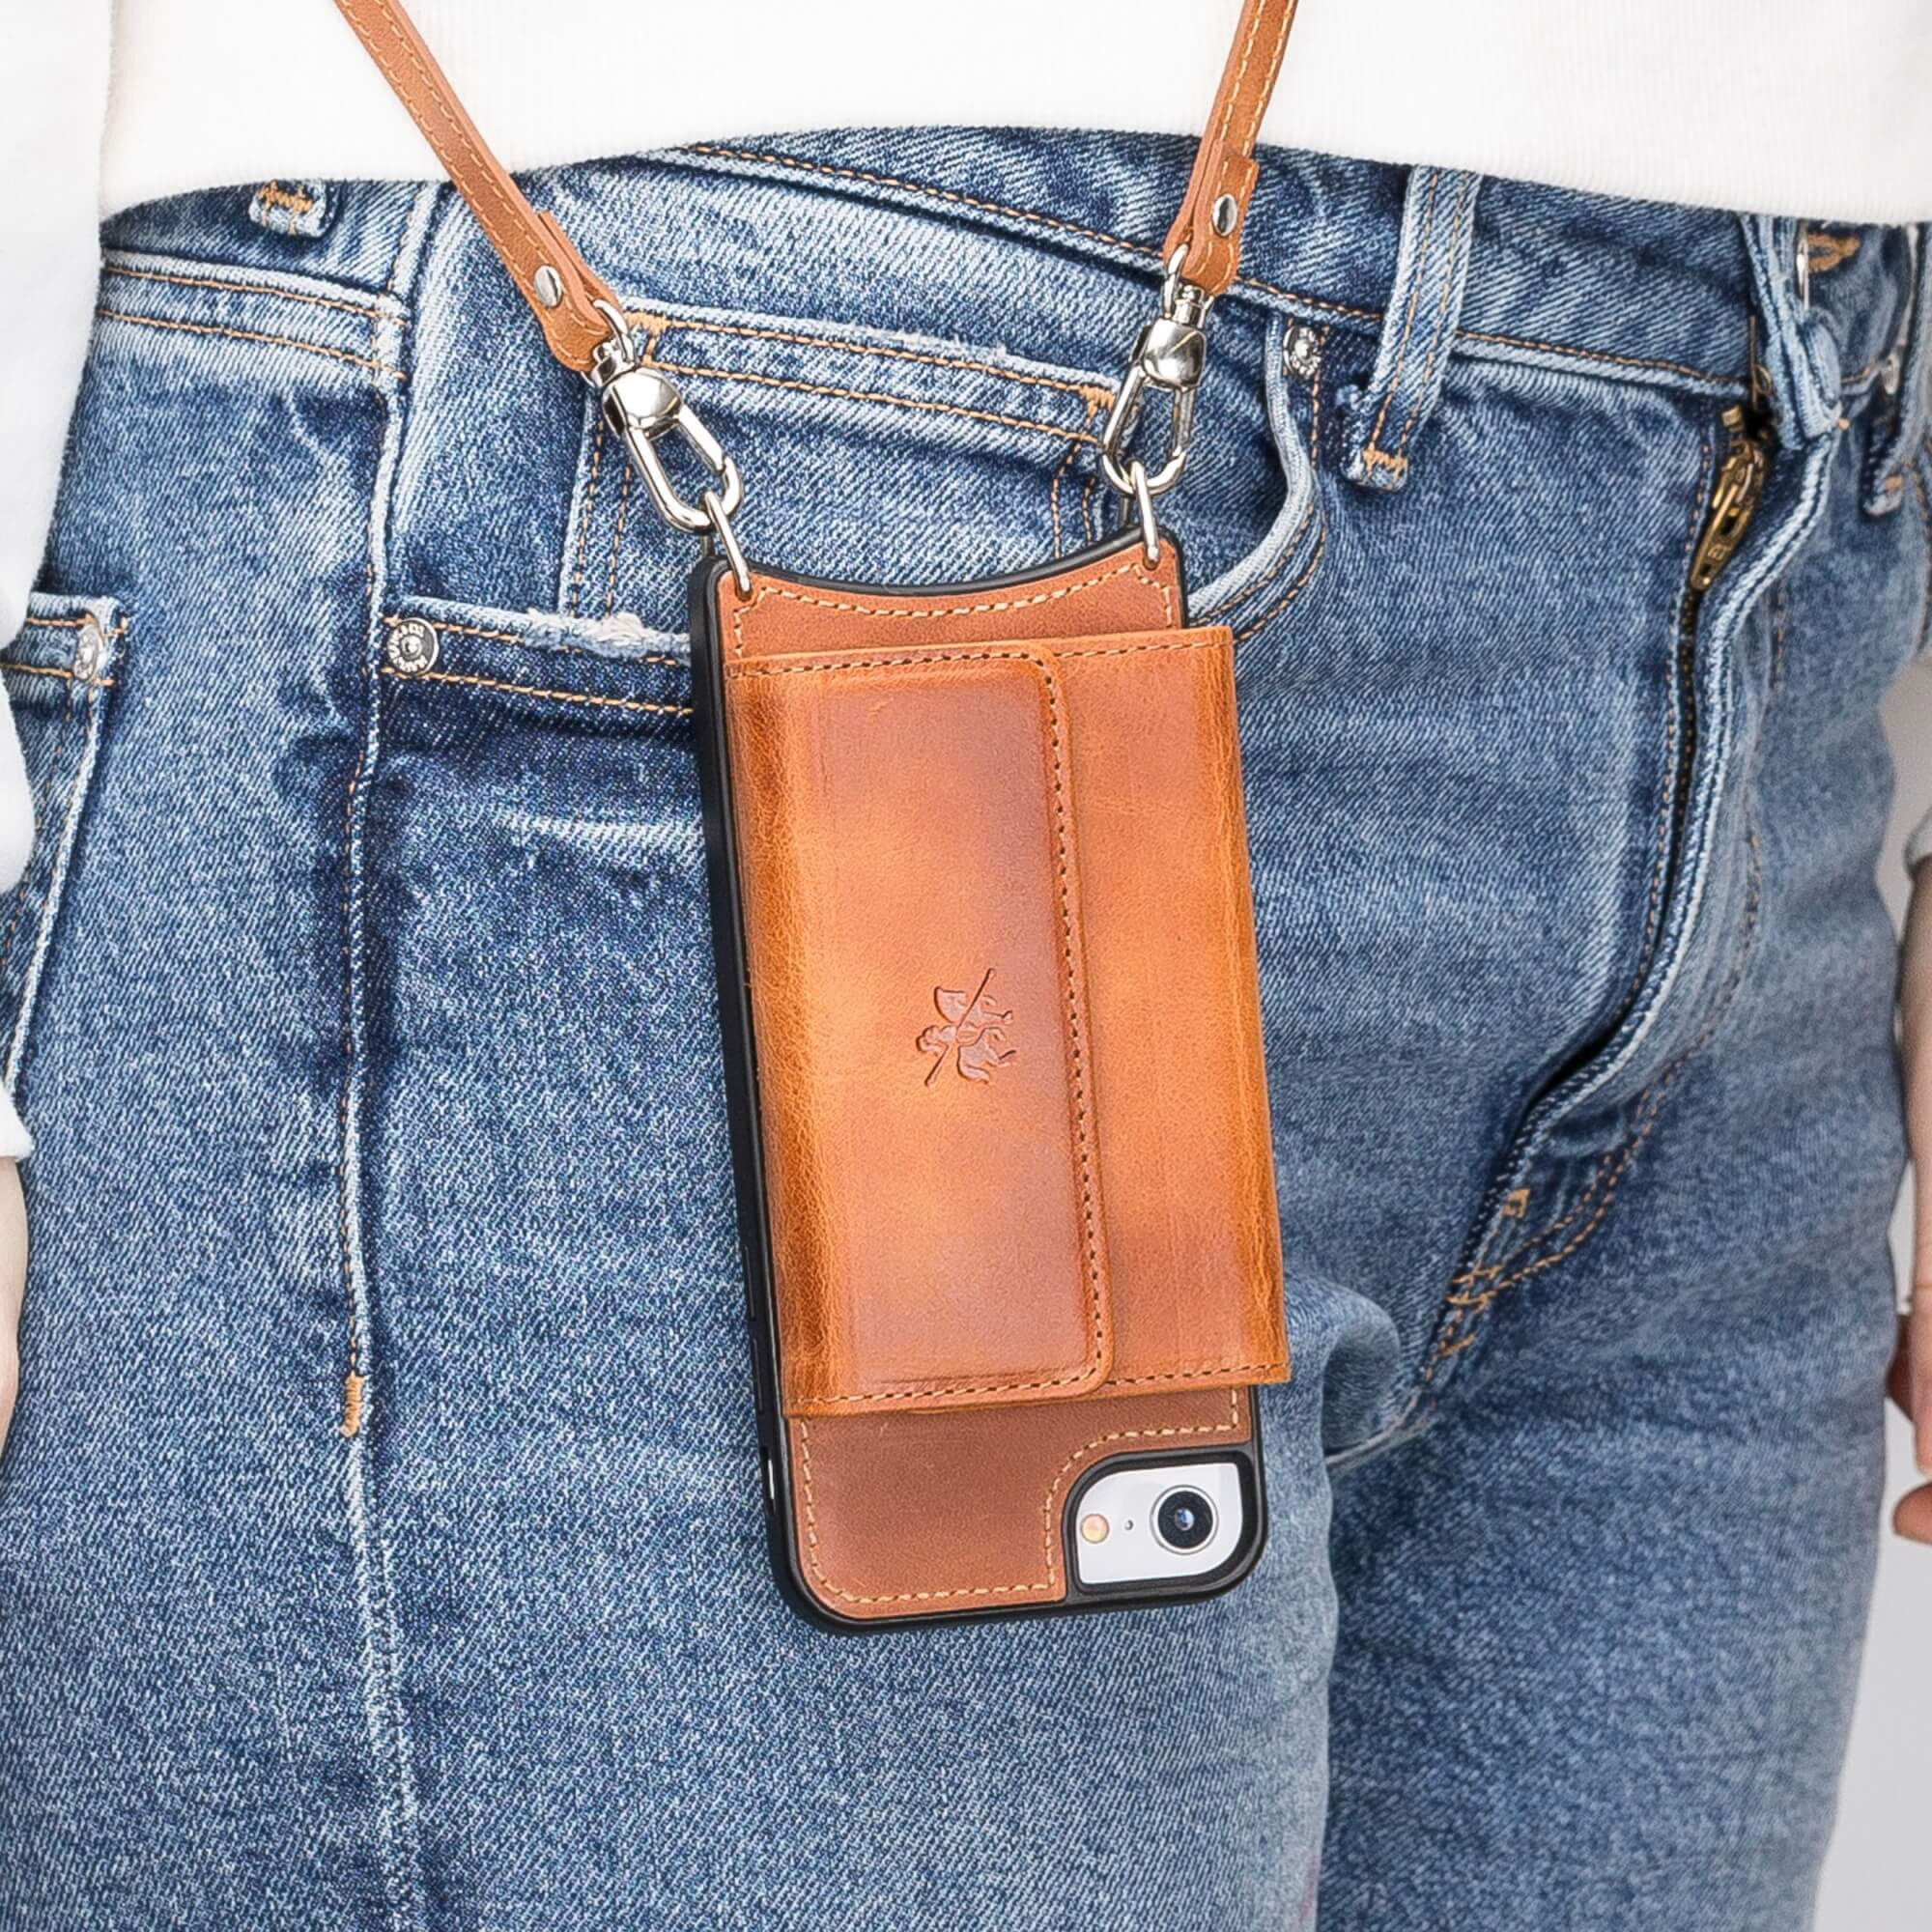 Fano Leather Crossbody Wallet Case for iPhone 8